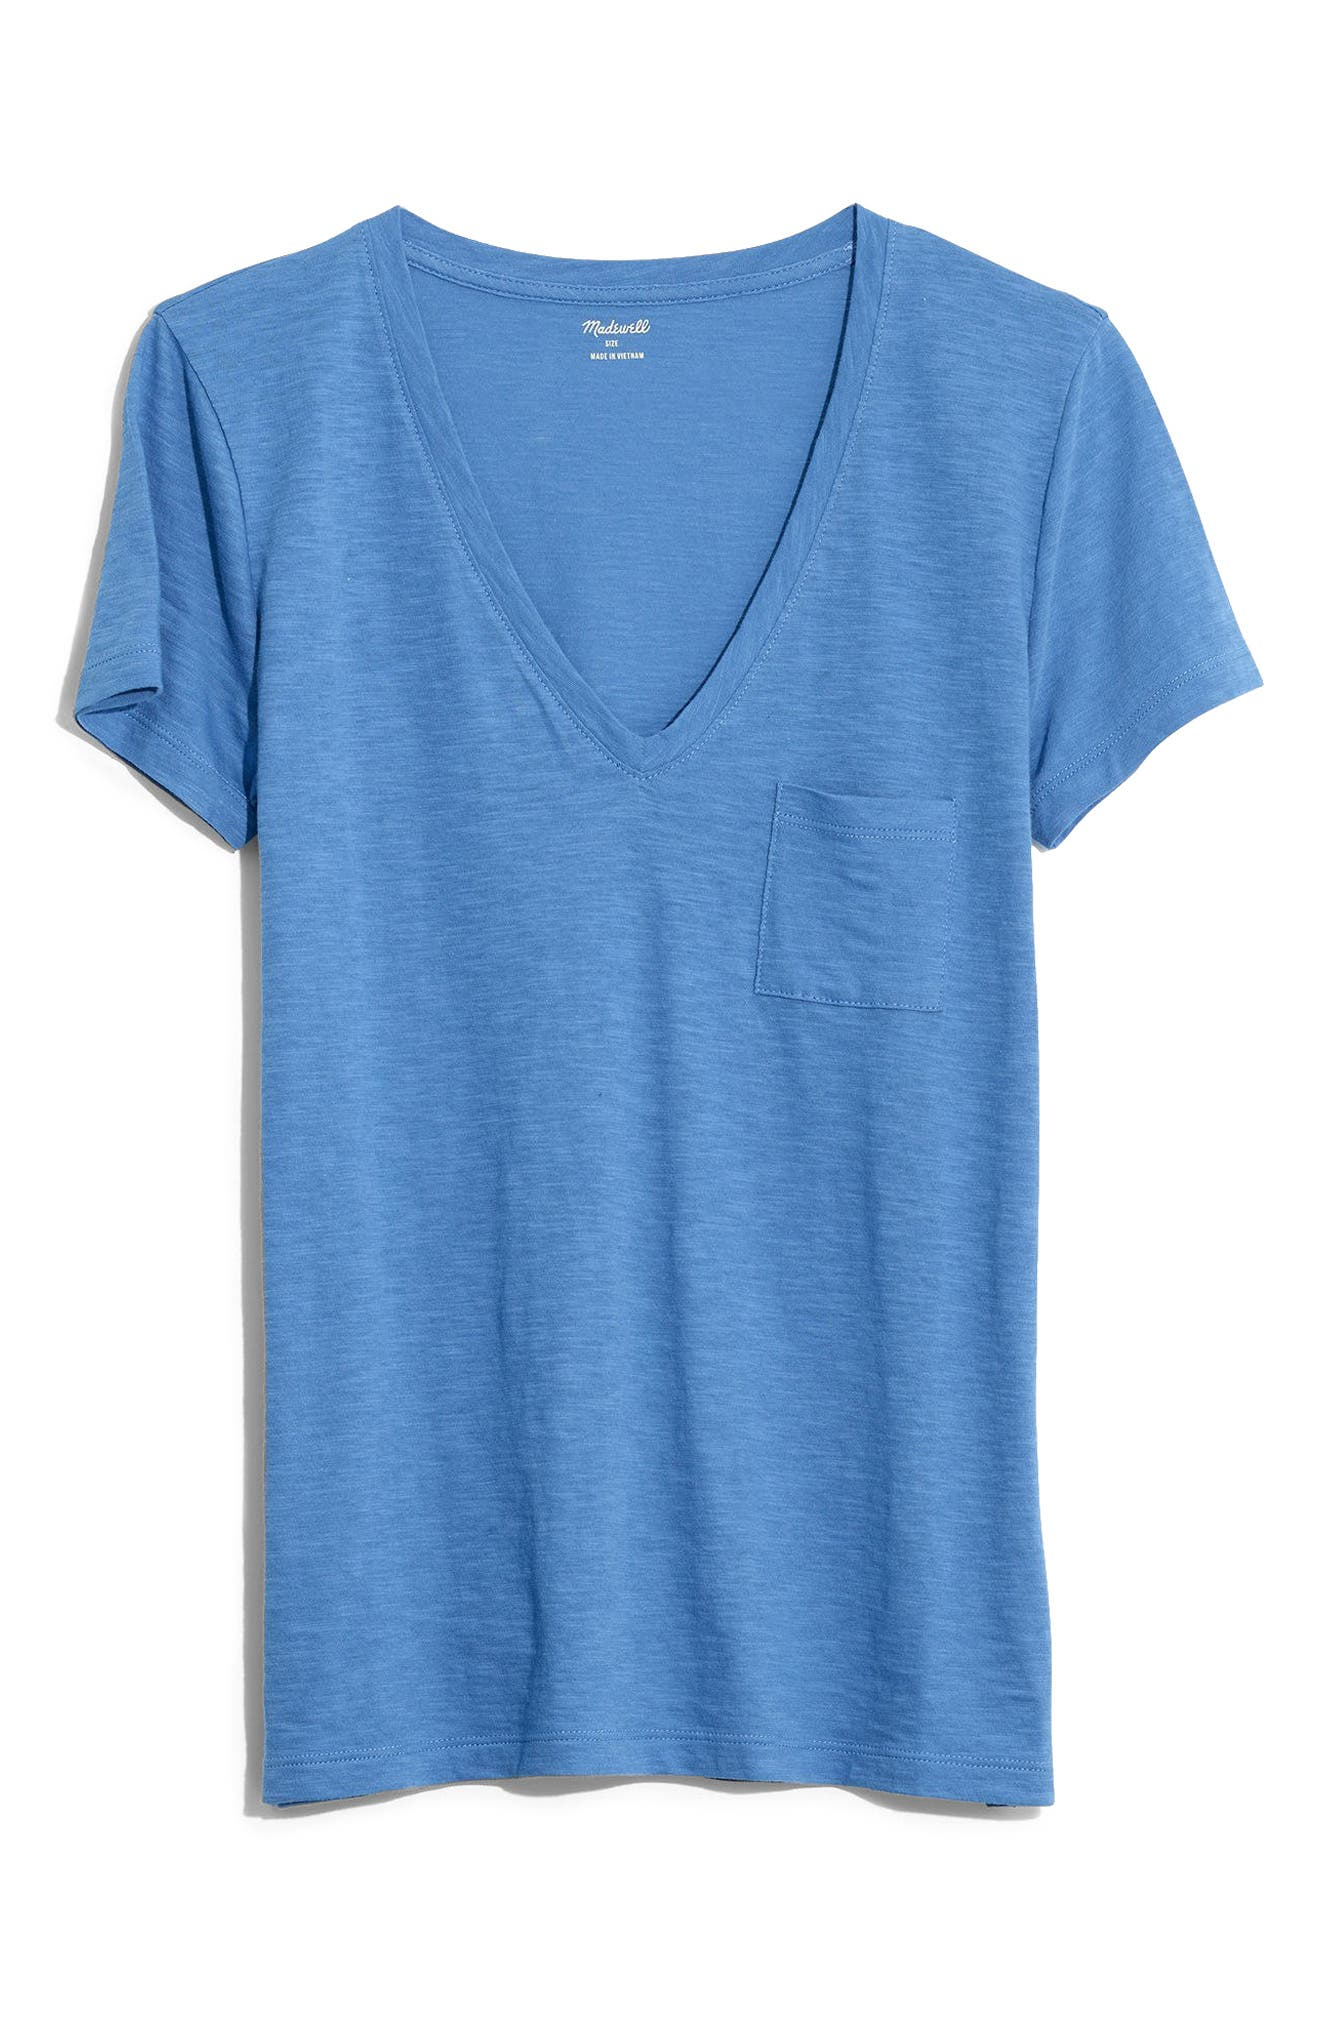 Madewell Whisper Cotton V-Neck Pocket Tee (Regular & Plus Size)